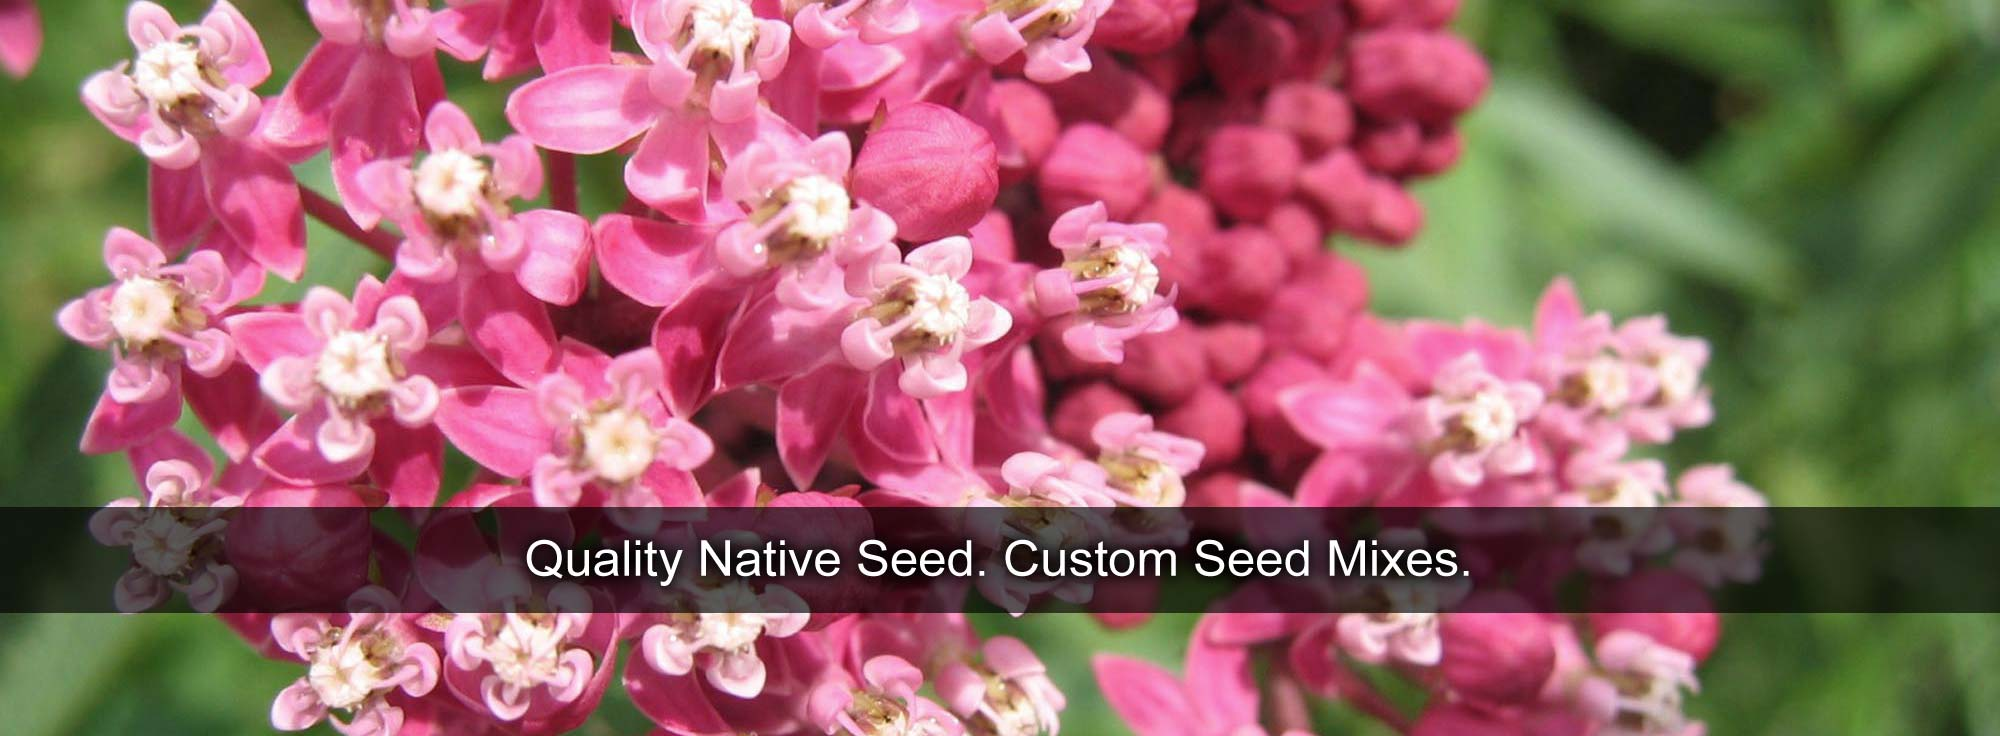 Quality Native Seed. Custom Seed Mixes.